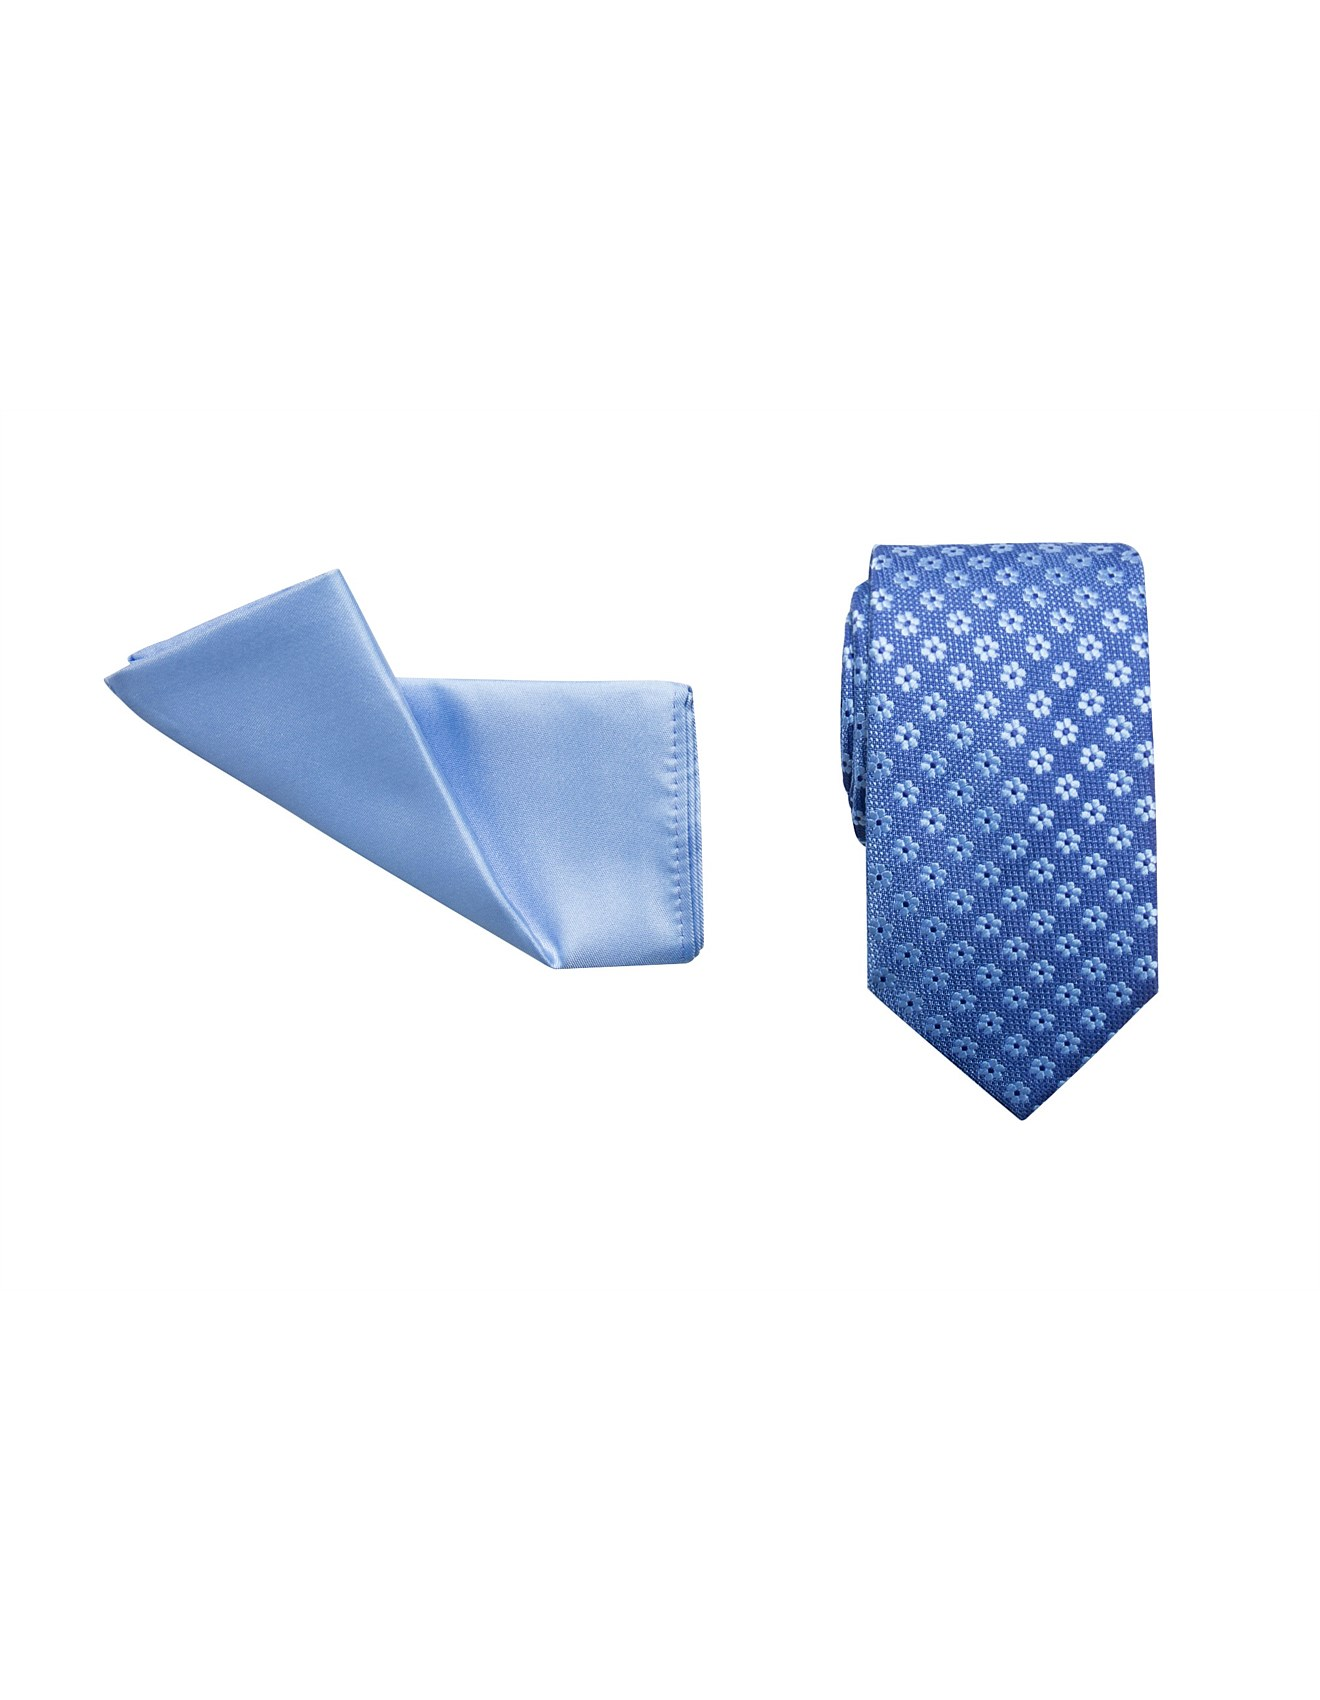 81dac607c481c Pocket Squares | Buy Pocket Squares Online | David Jones - TIE ...